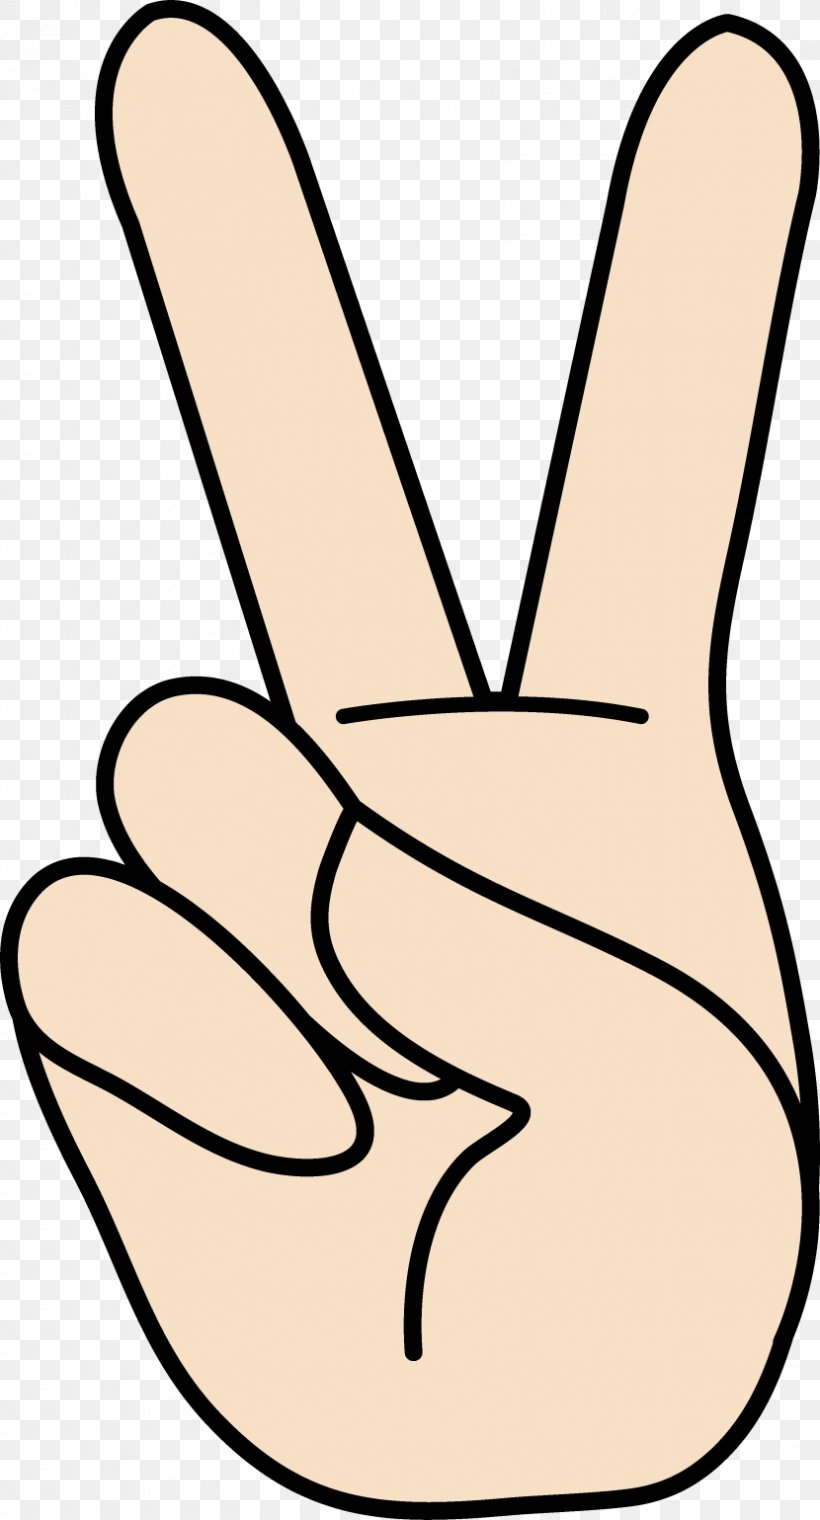 Peace Symbols V Sign Gesture Sign Language Clip Art, PNG.